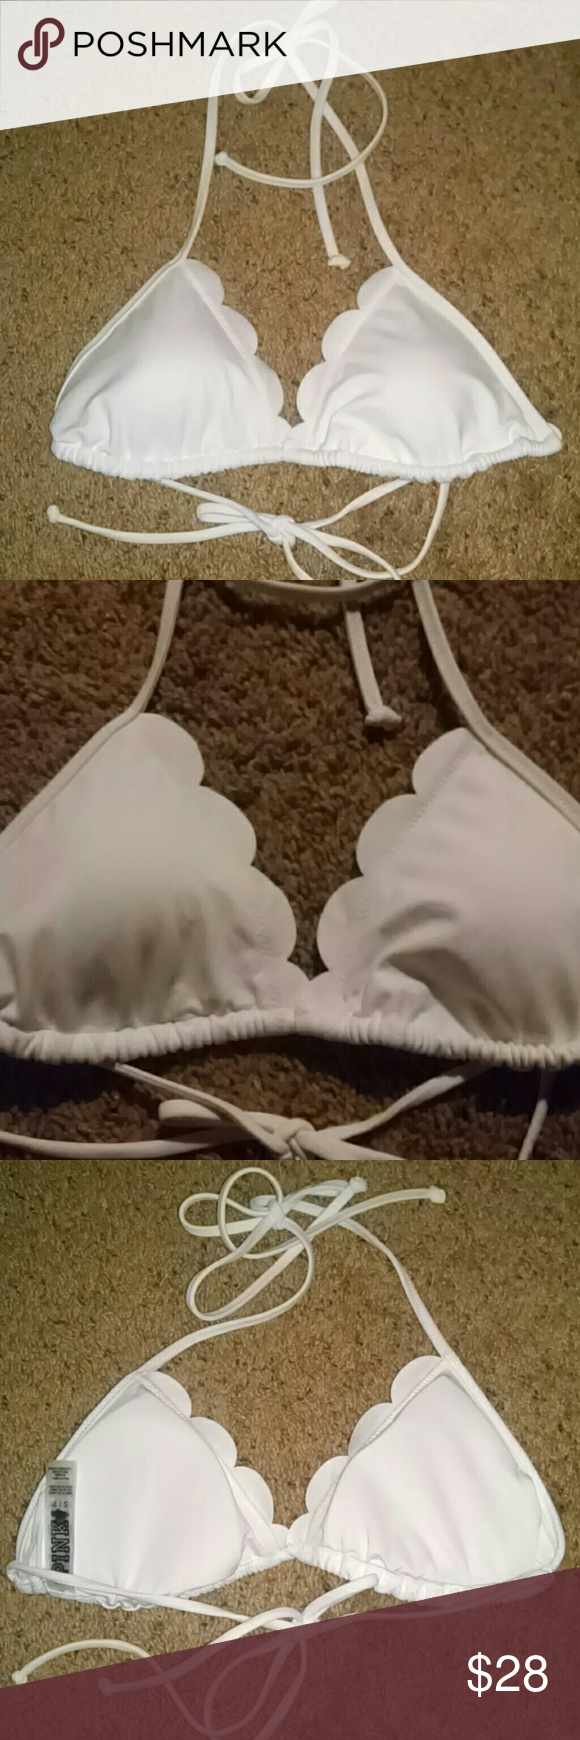 Victoria's Secret Pink Bikini Top White Small Victoria's Secret Bikini Top White Ties At Neck & Back Lightly padded removable cups Size Small  Fabric Nylon/Elastane  NEW without tags VS tags have been cut out or marked through to prevent store returns Care tag intact Victoria's Secret Discontinued their swimsuit line. Sale item PINK Victoria's Secret Swim Bikinis